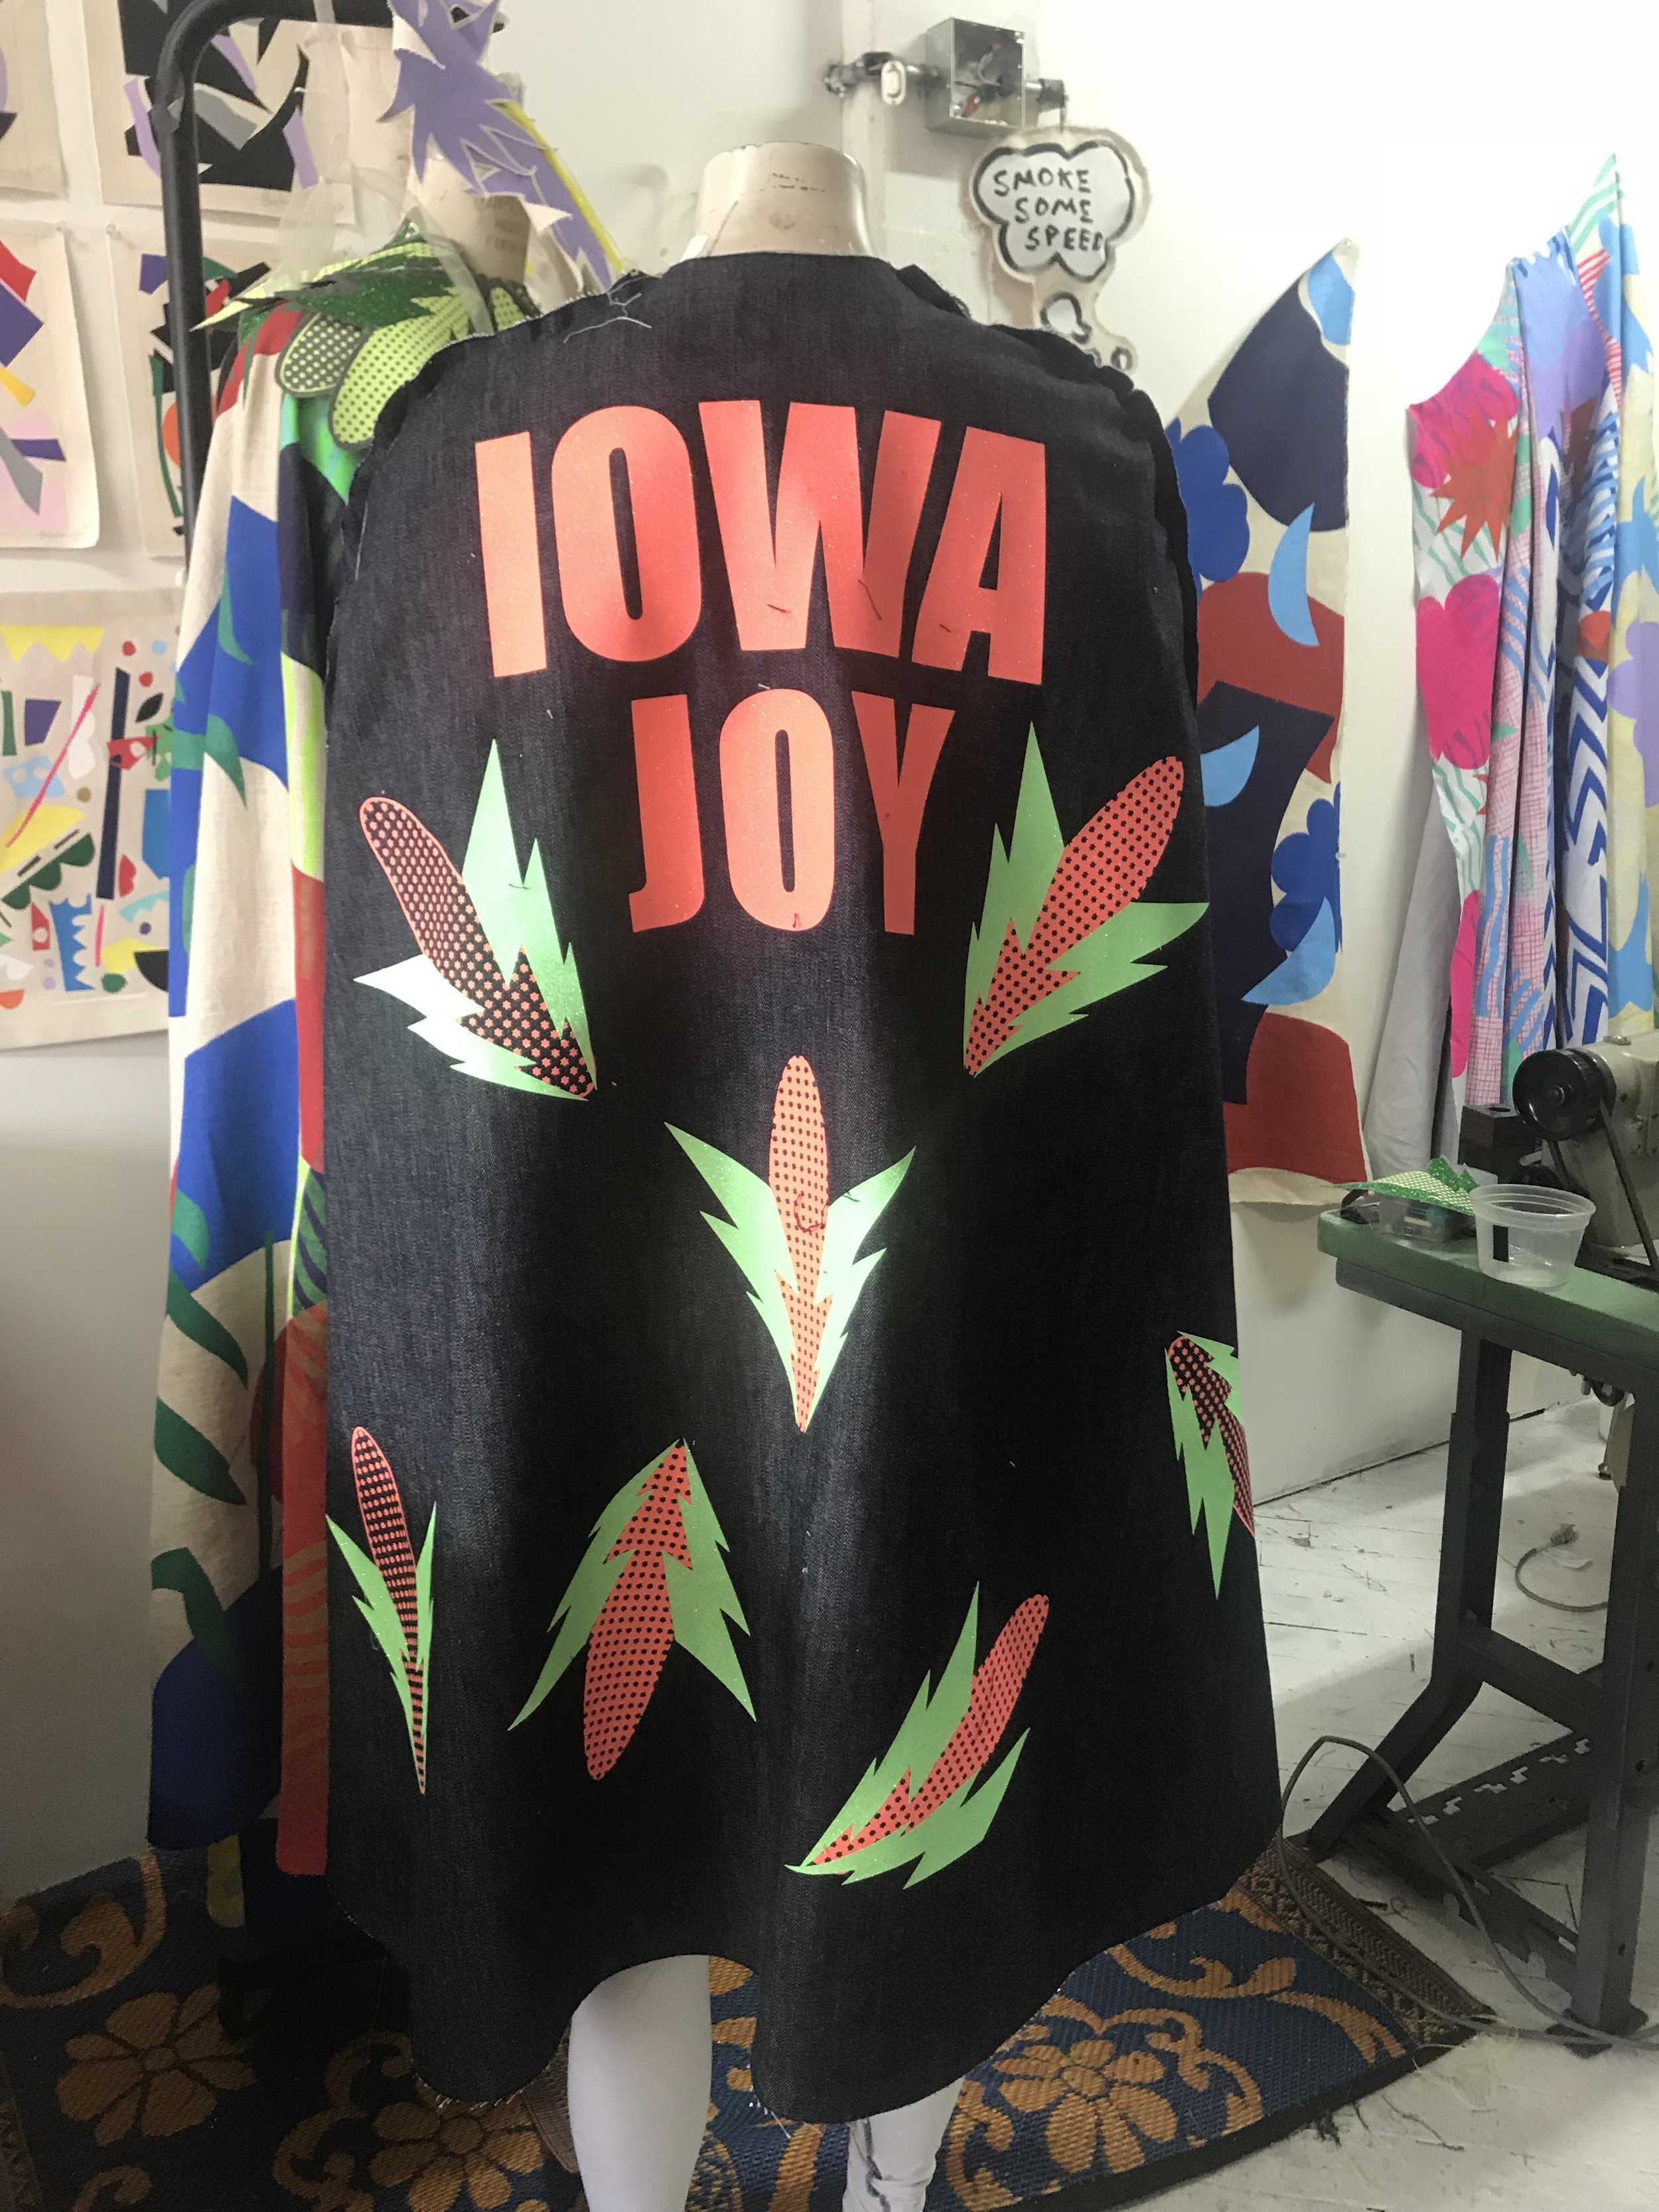 Iowa Joy, my alter ego.